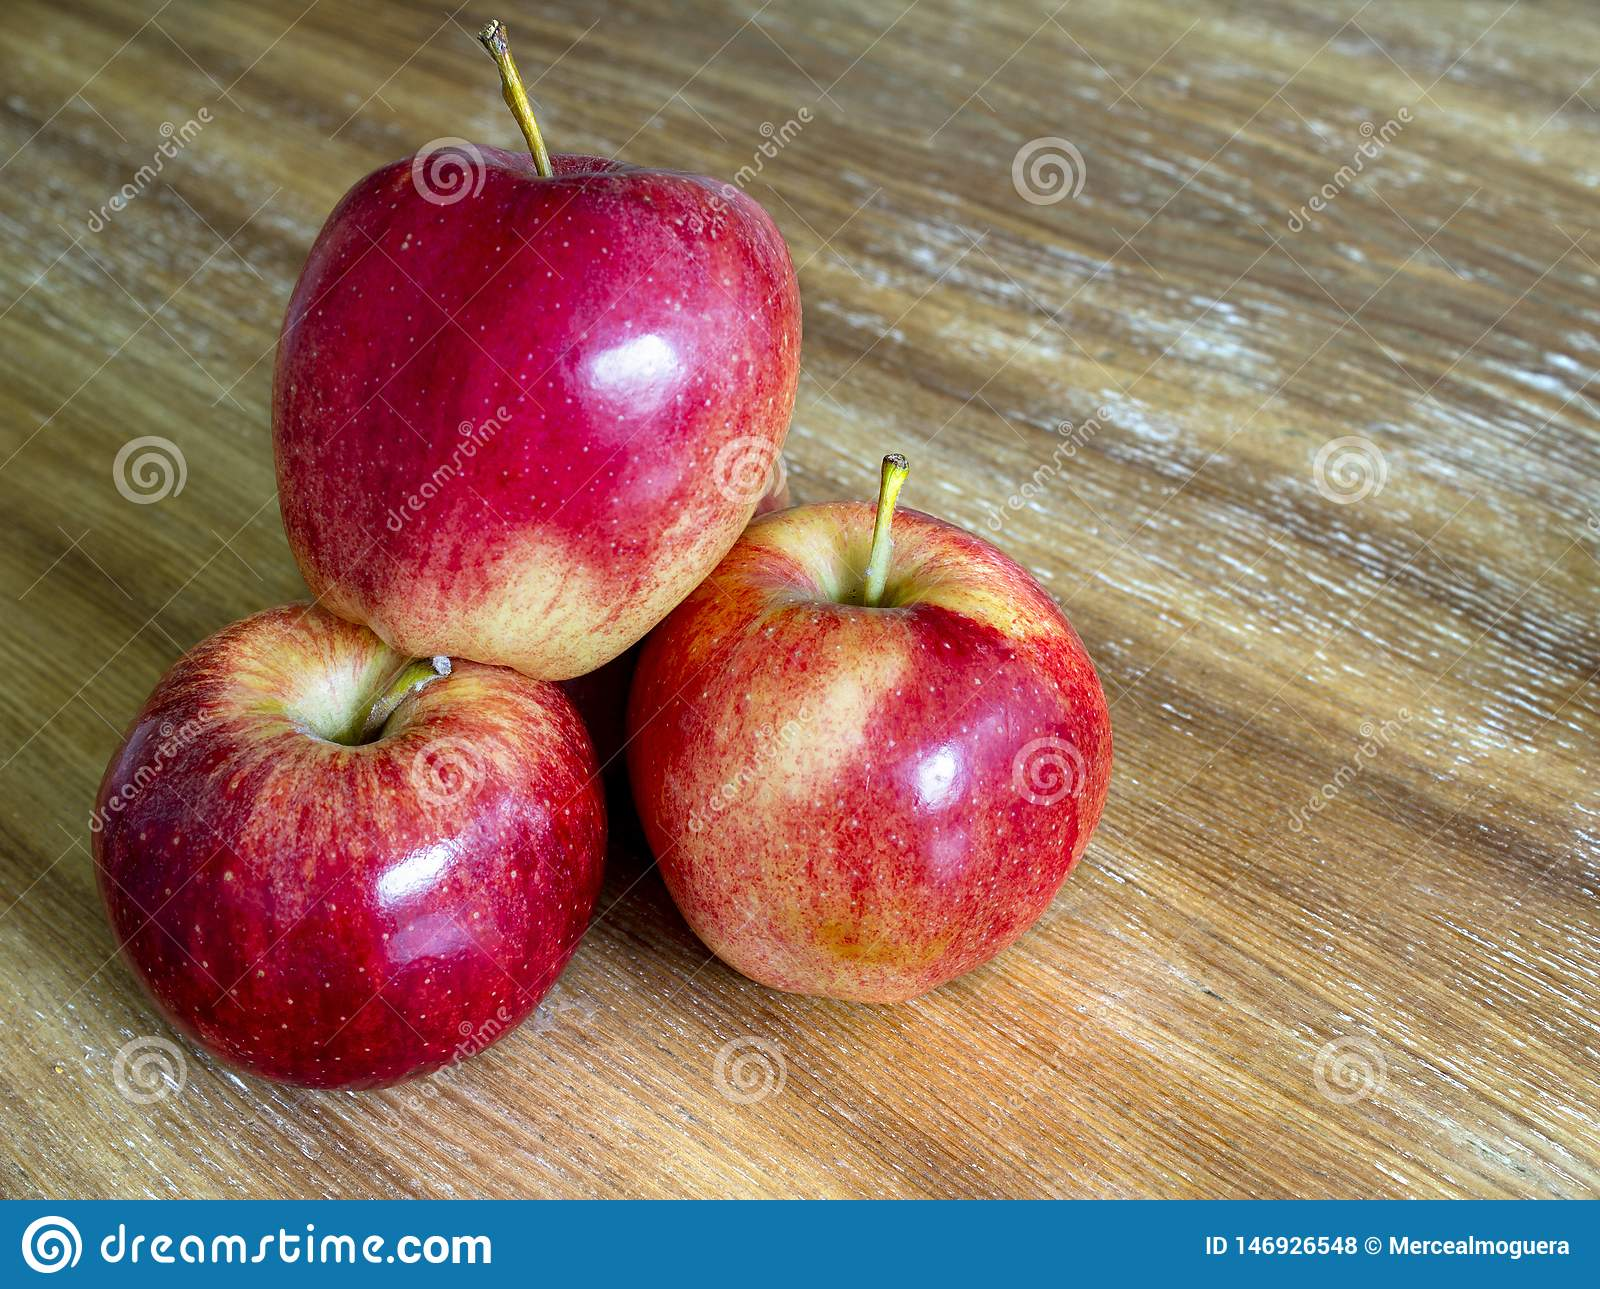 Three red apples isolated on wooden background